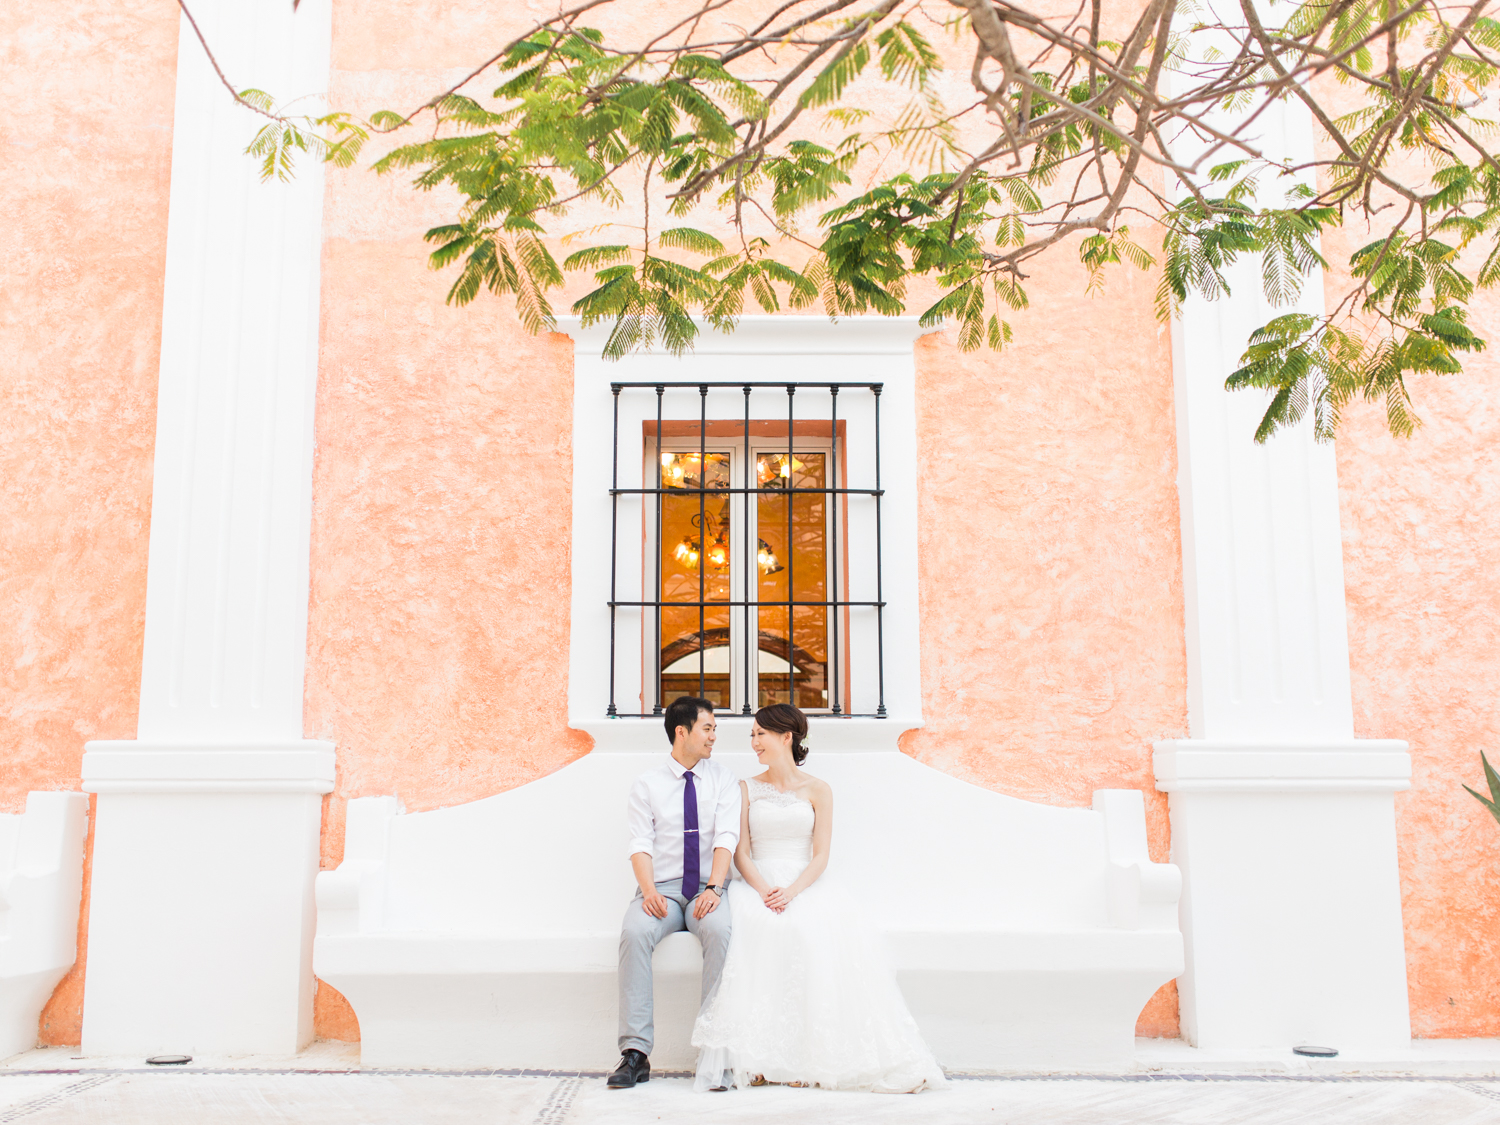 Riviera_Cancun_Excellence_Mexico_wedding_Dallas_destination_photographer.jpg